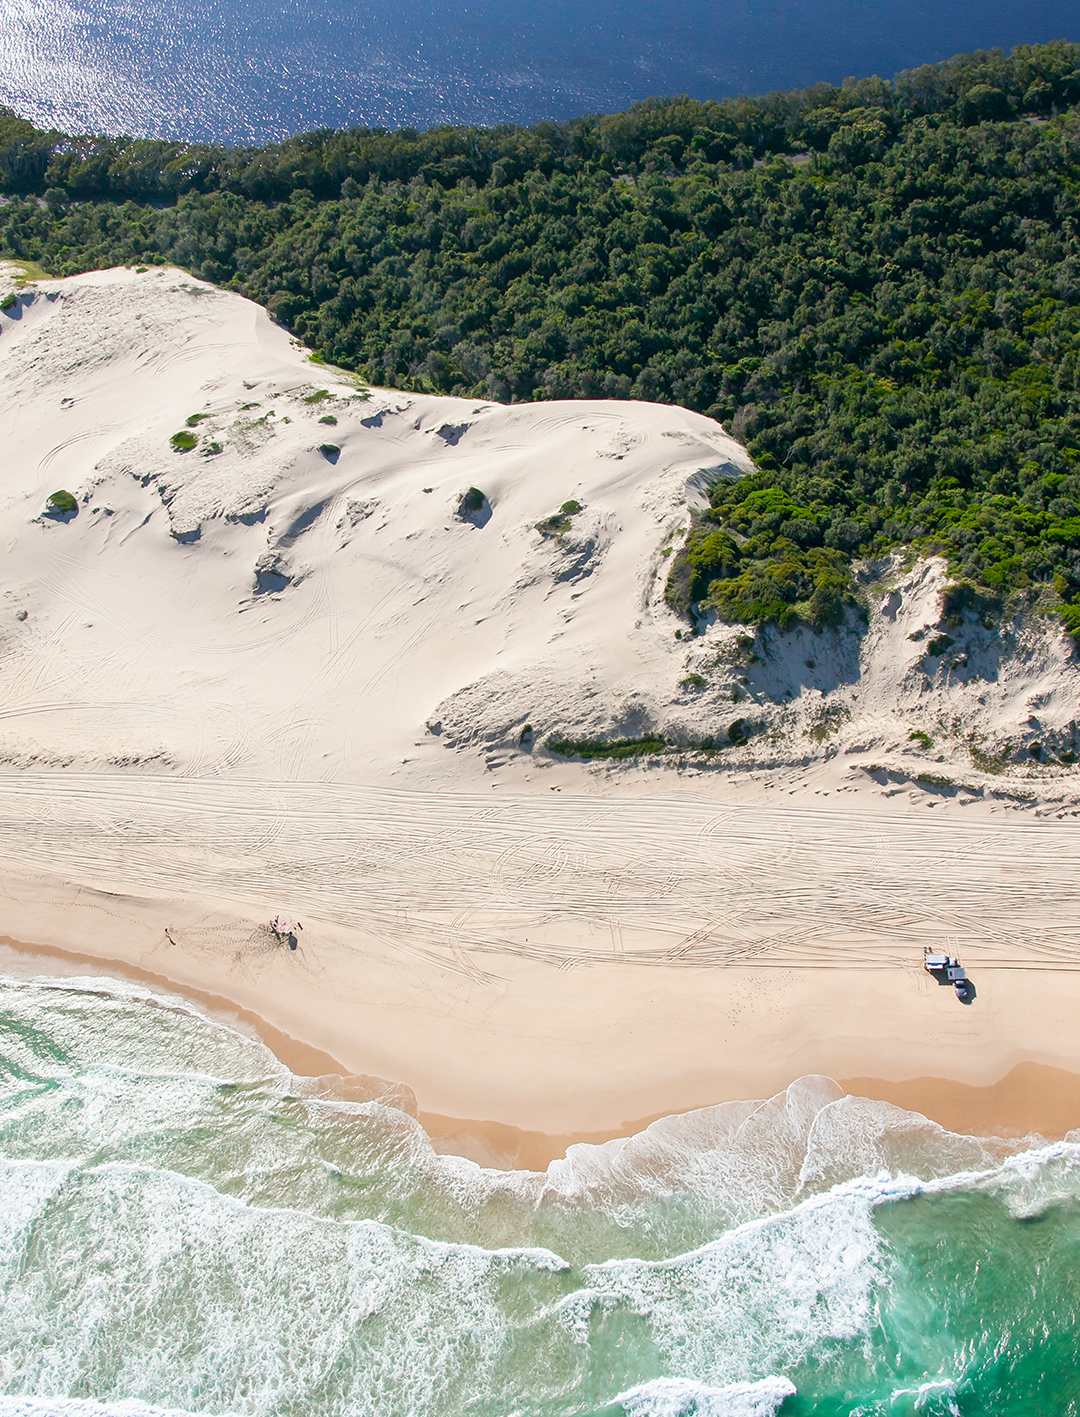 aerial of 4wd on sand